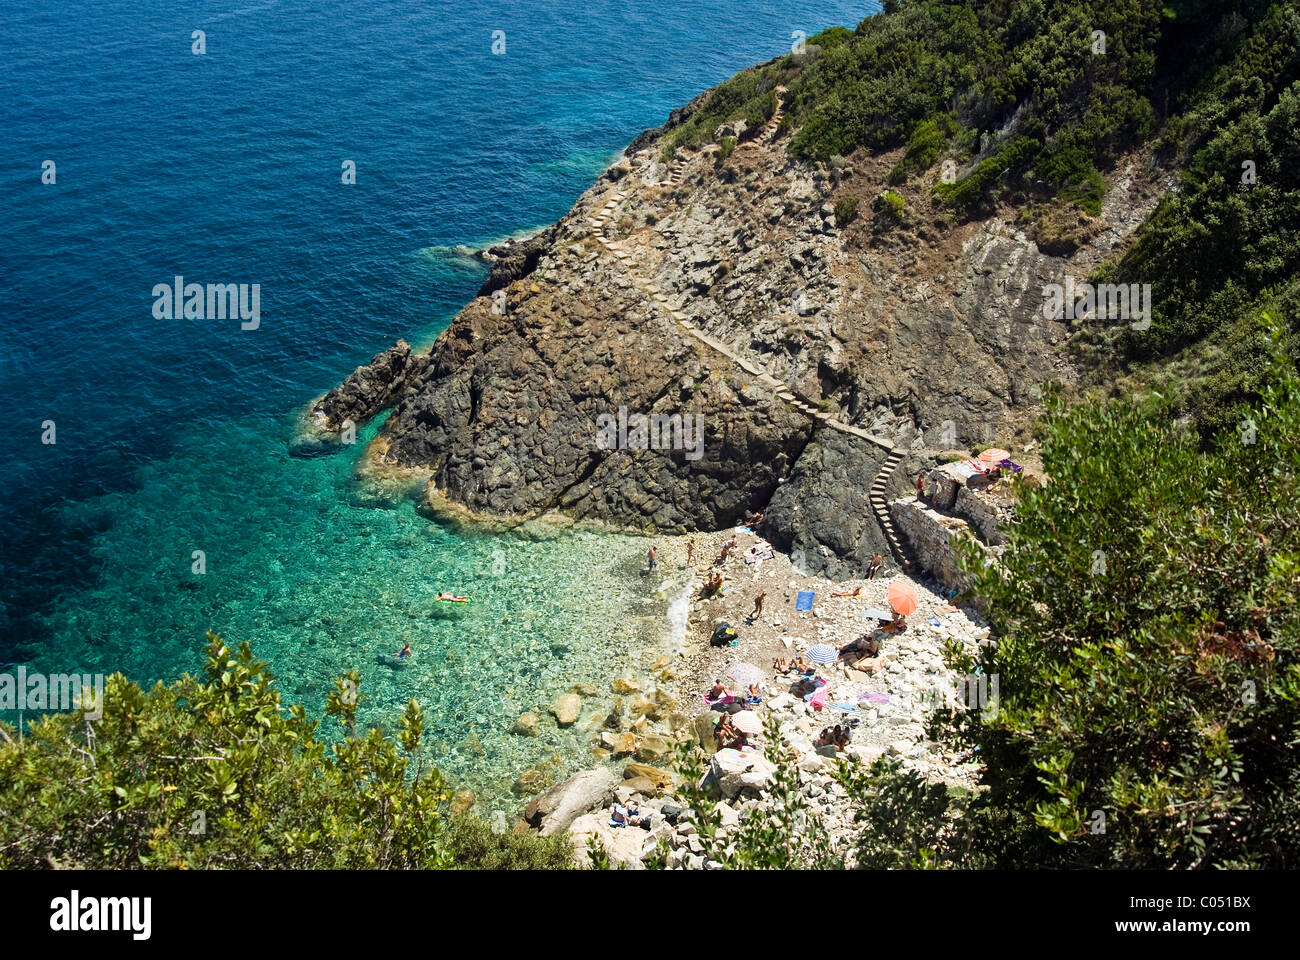 isola d'elba - photo #18